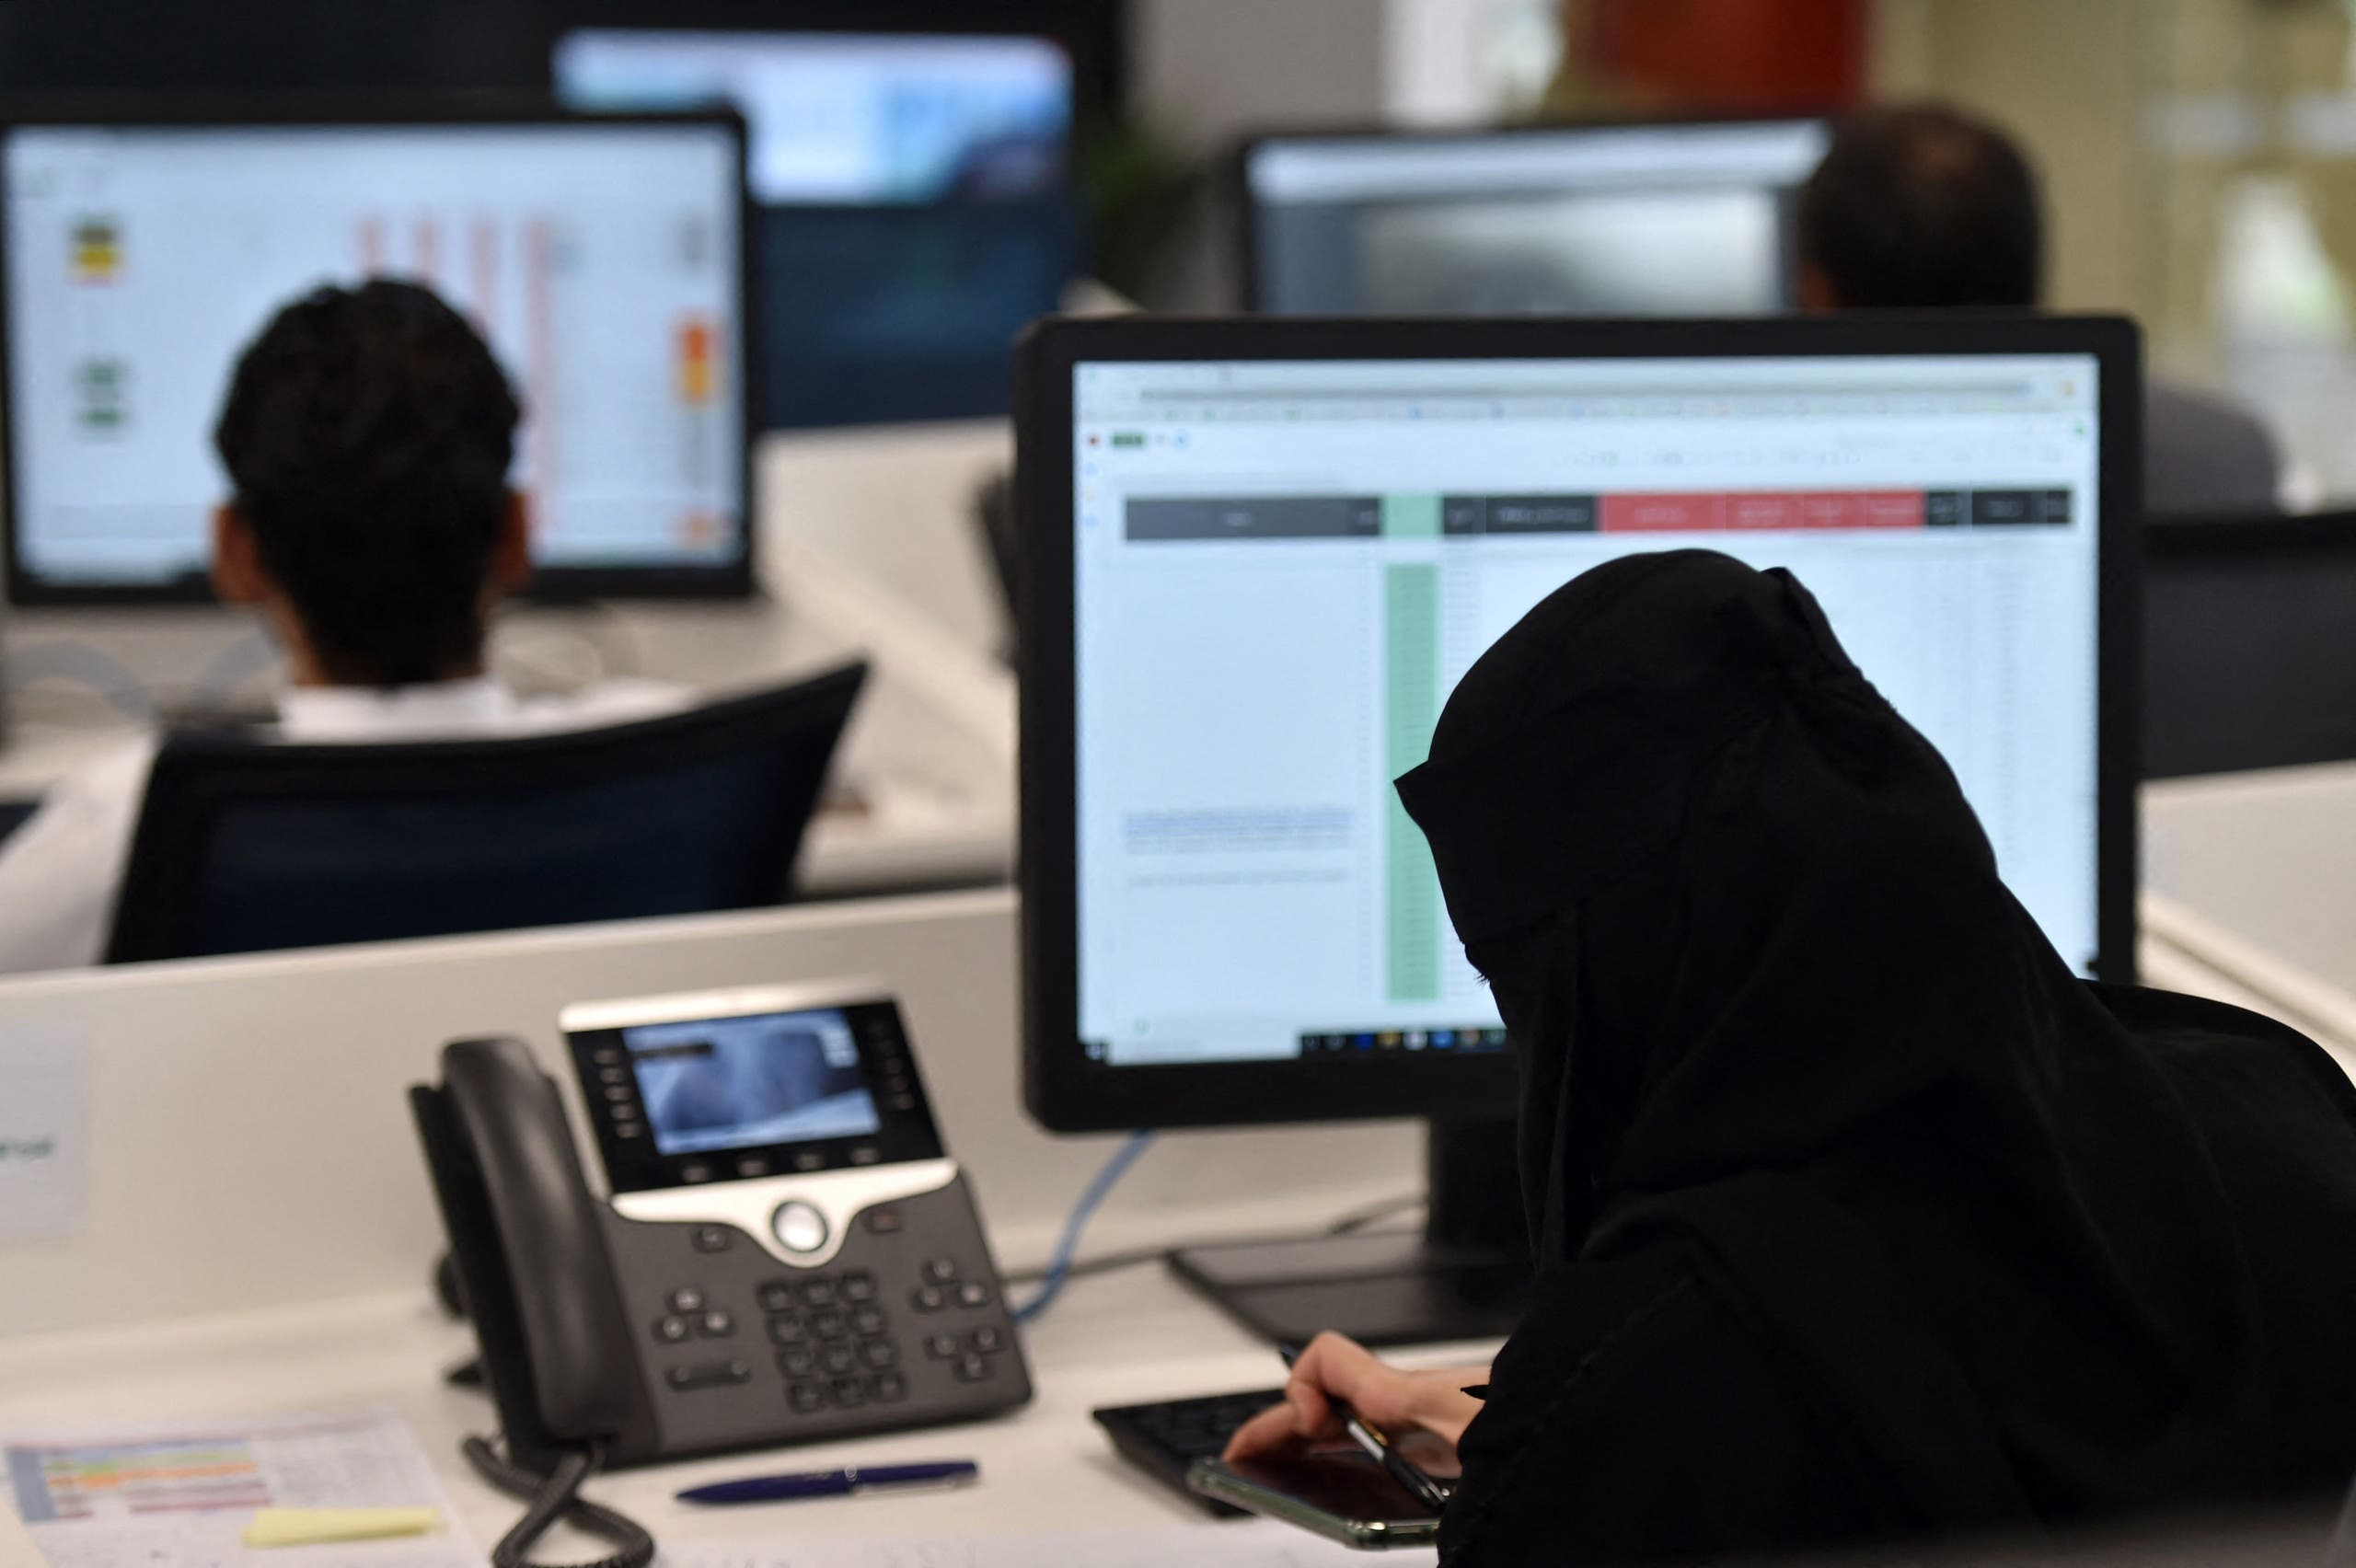 Employees work at the Saudi National Health Emergency Operations Center (NHEOC) in the capital Ryadh on May 3, 2020, during the novel coronavirus pandemic crisis. (AFP)